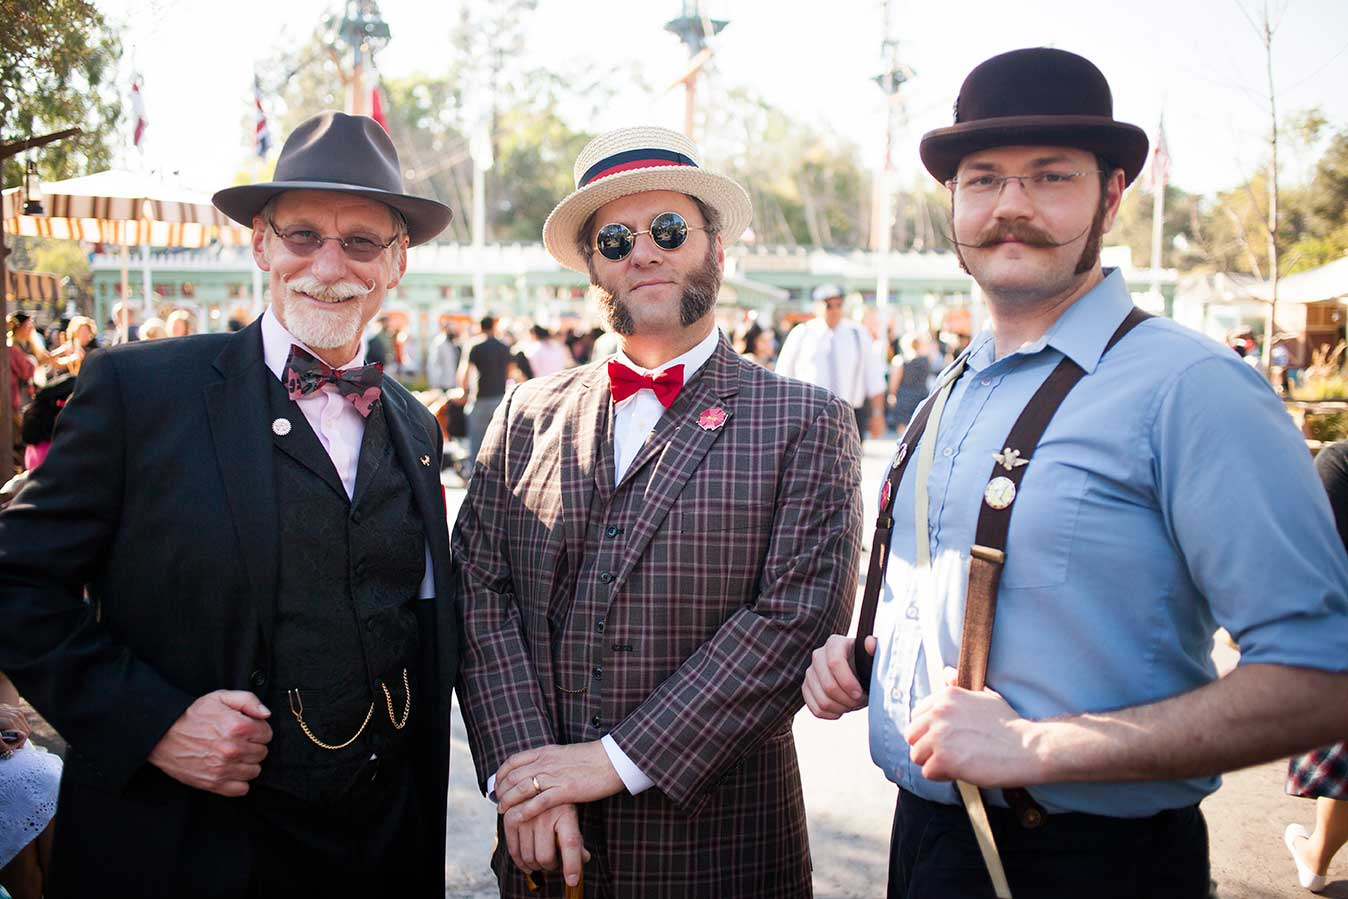 dapper-day10.jpg